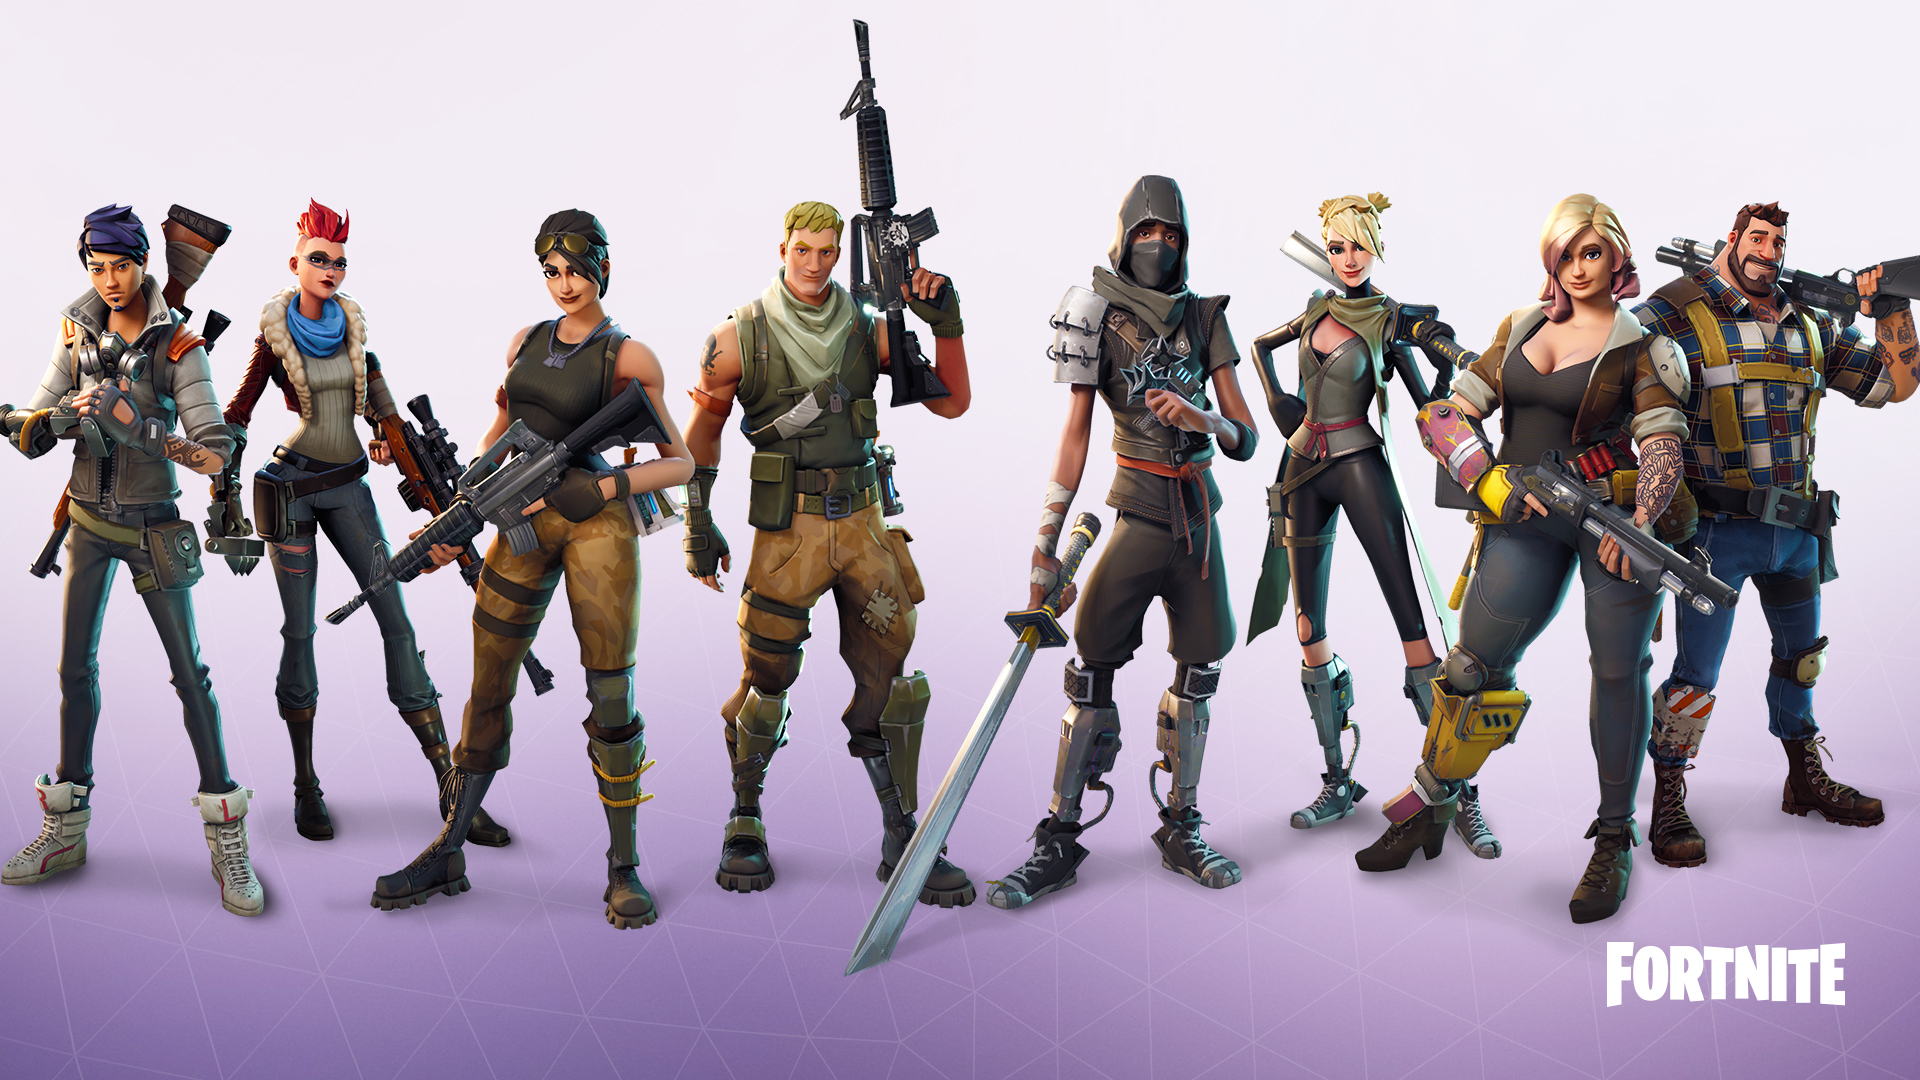 Fortnite%2Fblog%2Ffortnite-build-explore-craft-and-fight-on-july-25%2FStarterpackHeroes_Screenshot-1920x1080-0feb2575d7aca40bdd9ad0a6d0a6a269f890089d